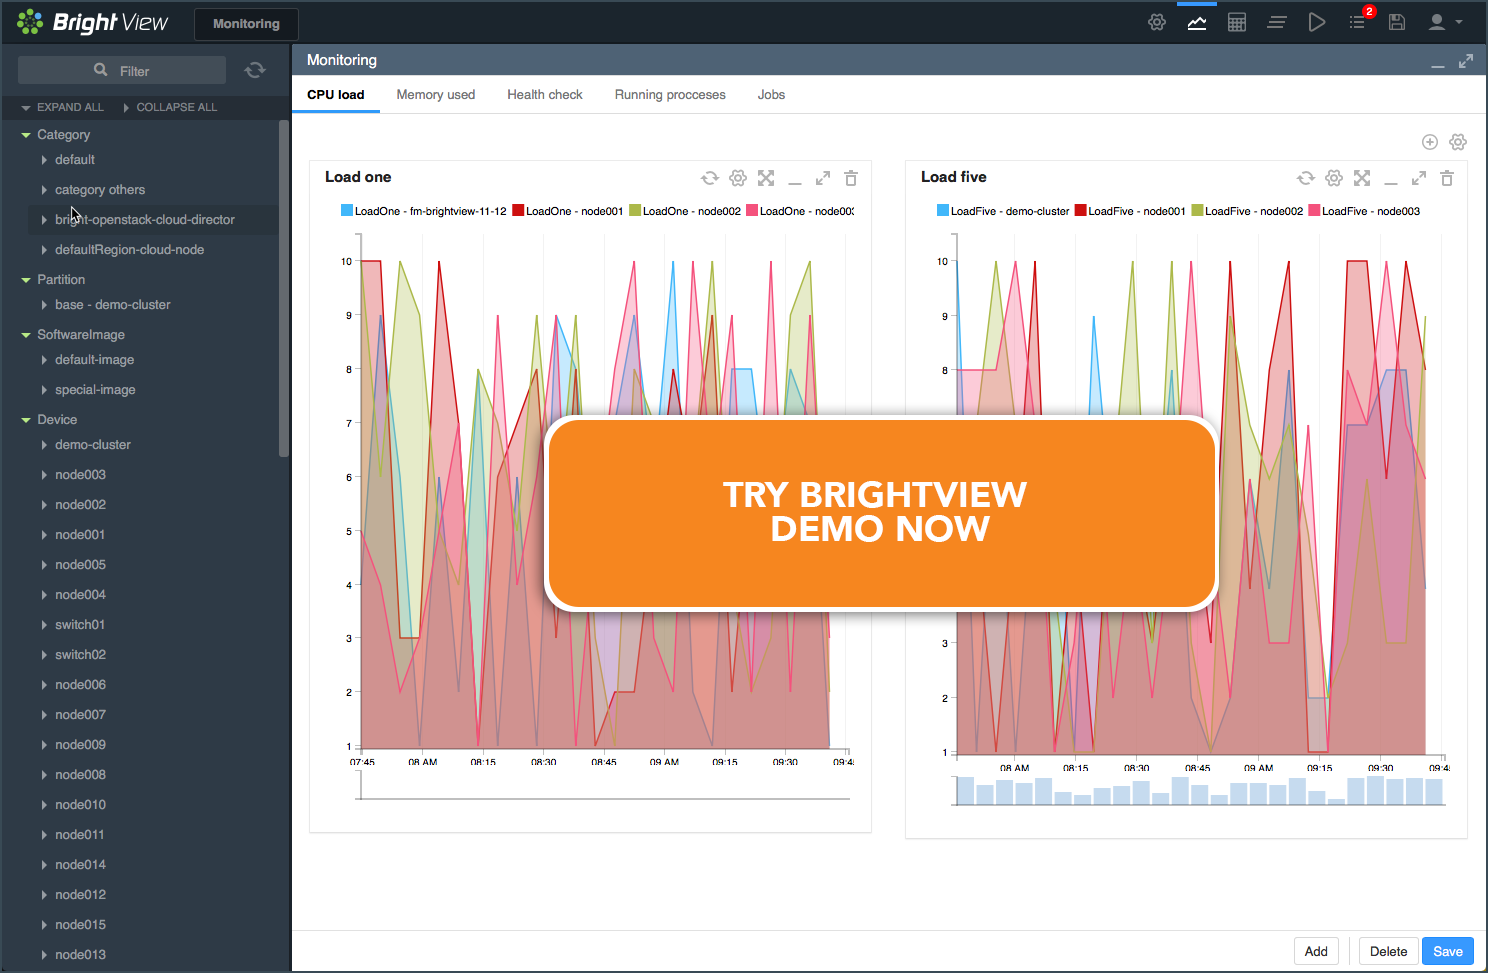 brightview-monitoring-screen-btn.png